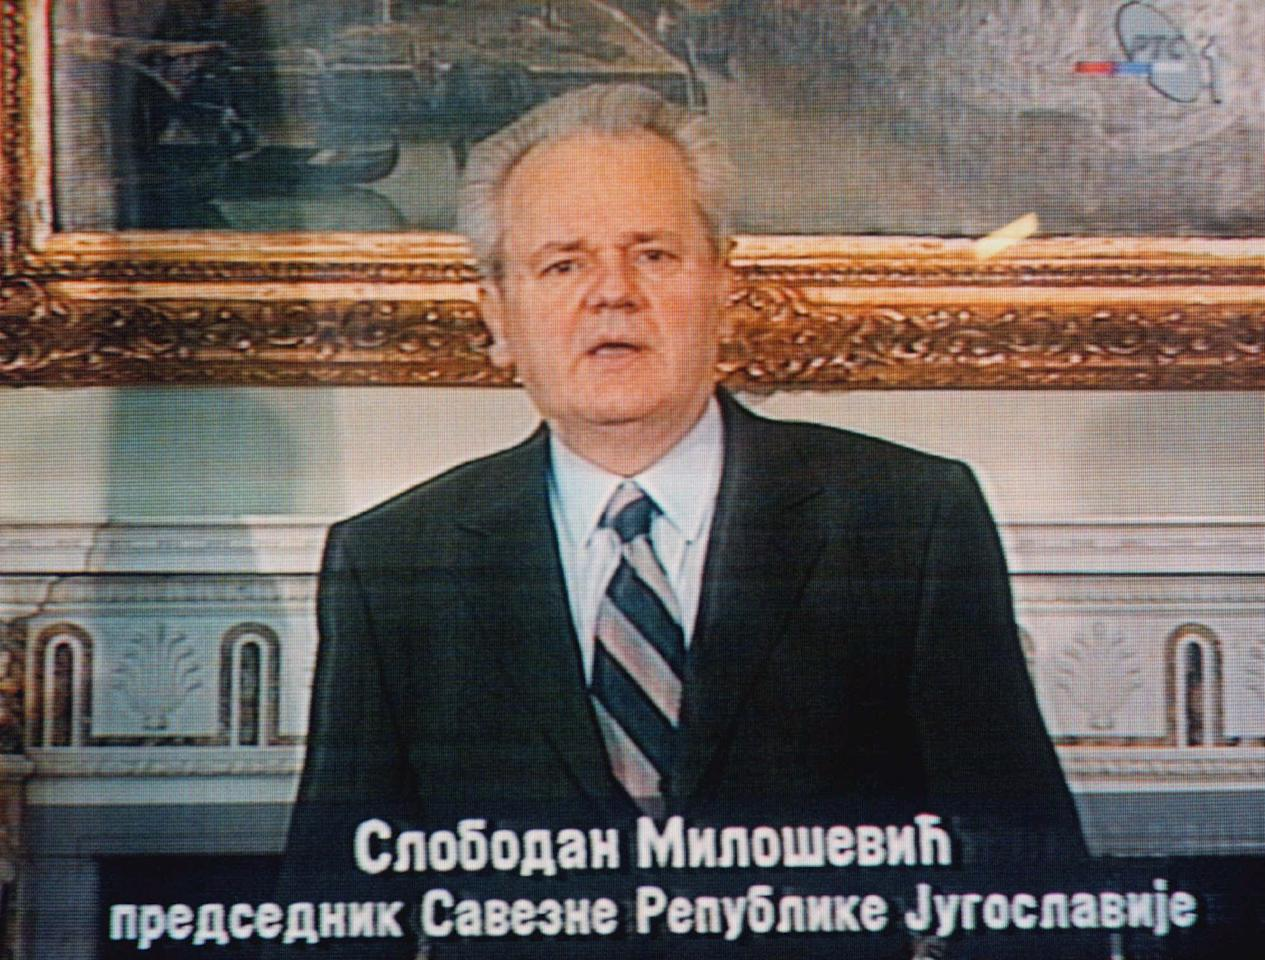 "FILE - In this March 24, 1999, file photo, taken from television, former Yugoslav President Slobodan Milosevic addresses the nation from Belgrade, Serbia. Caption at bottom translates, ""Slobodan Milosevic President of the Federal Republic of Yugoslavia."" NATO war planes were hitting tanks with deadly precision in Serbia, aiming to degrade a despot's army and empower the ragtag rebel force, which appears to echo the air strikes on the forces of Libyan leader Moammar Gadhafi, although in Libya there is no endgame in sight, yet."